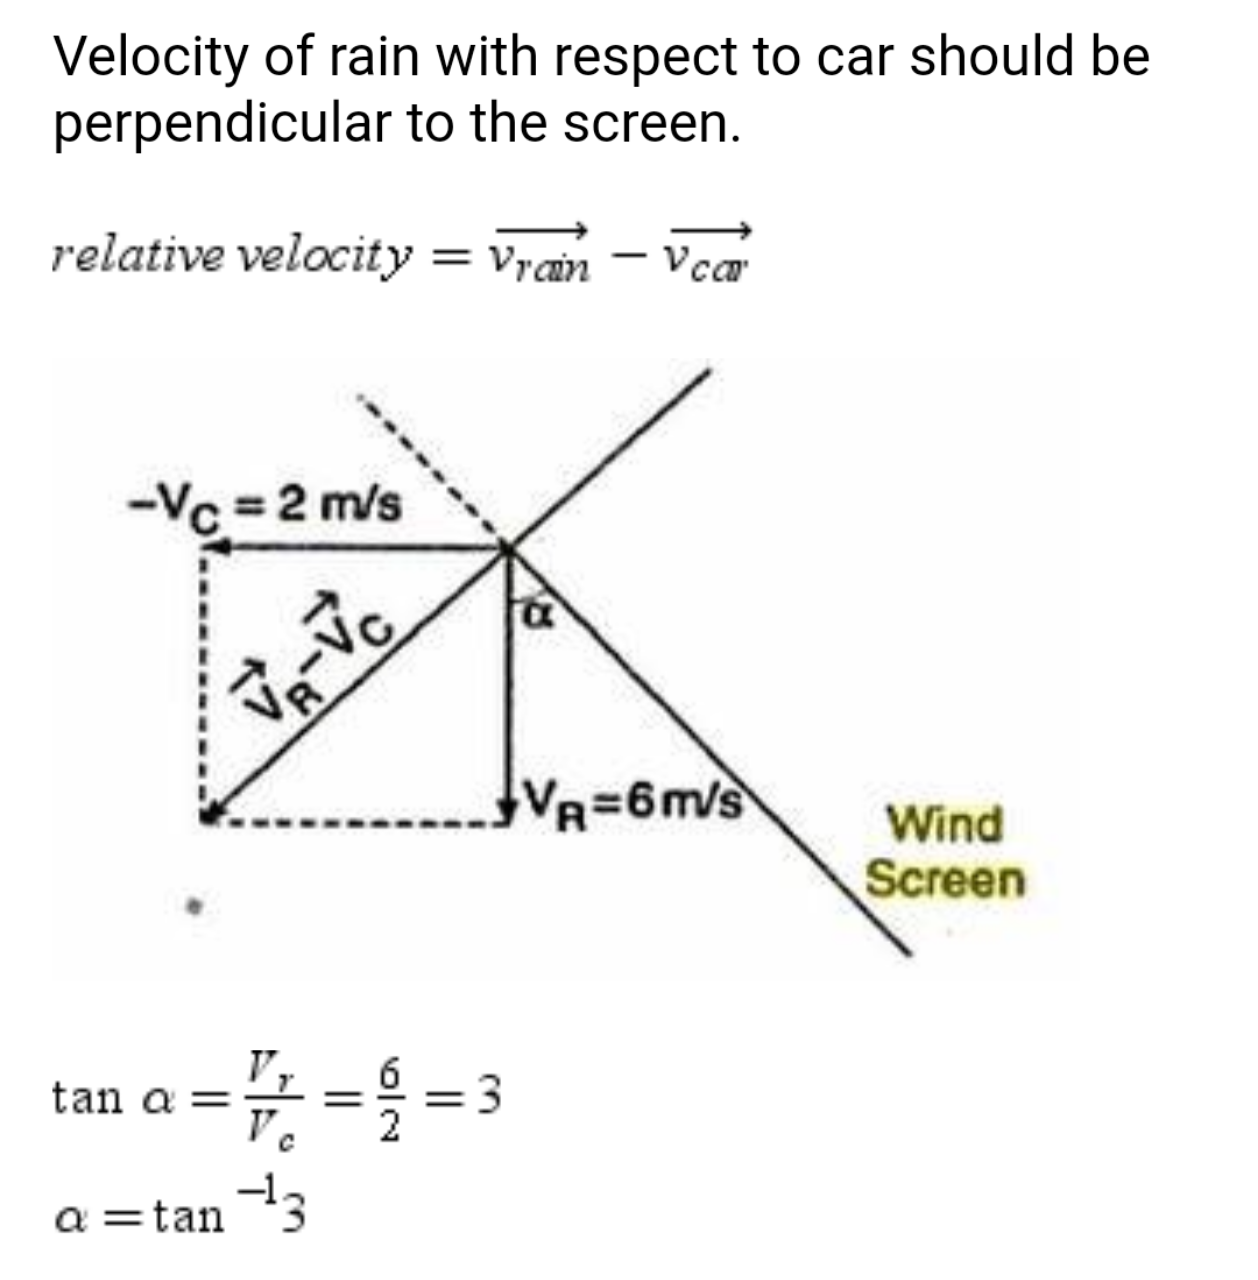 A glass wind screen whose inclination with the vertical can be changed is mounted on a car. The car moves horizontally with a speed of 2m/s. At what angle α with the vertical should the wind screen be placed so that the rain drops falling vertically downwards with velocity 6m/s strike the wind screen perpendicularly?